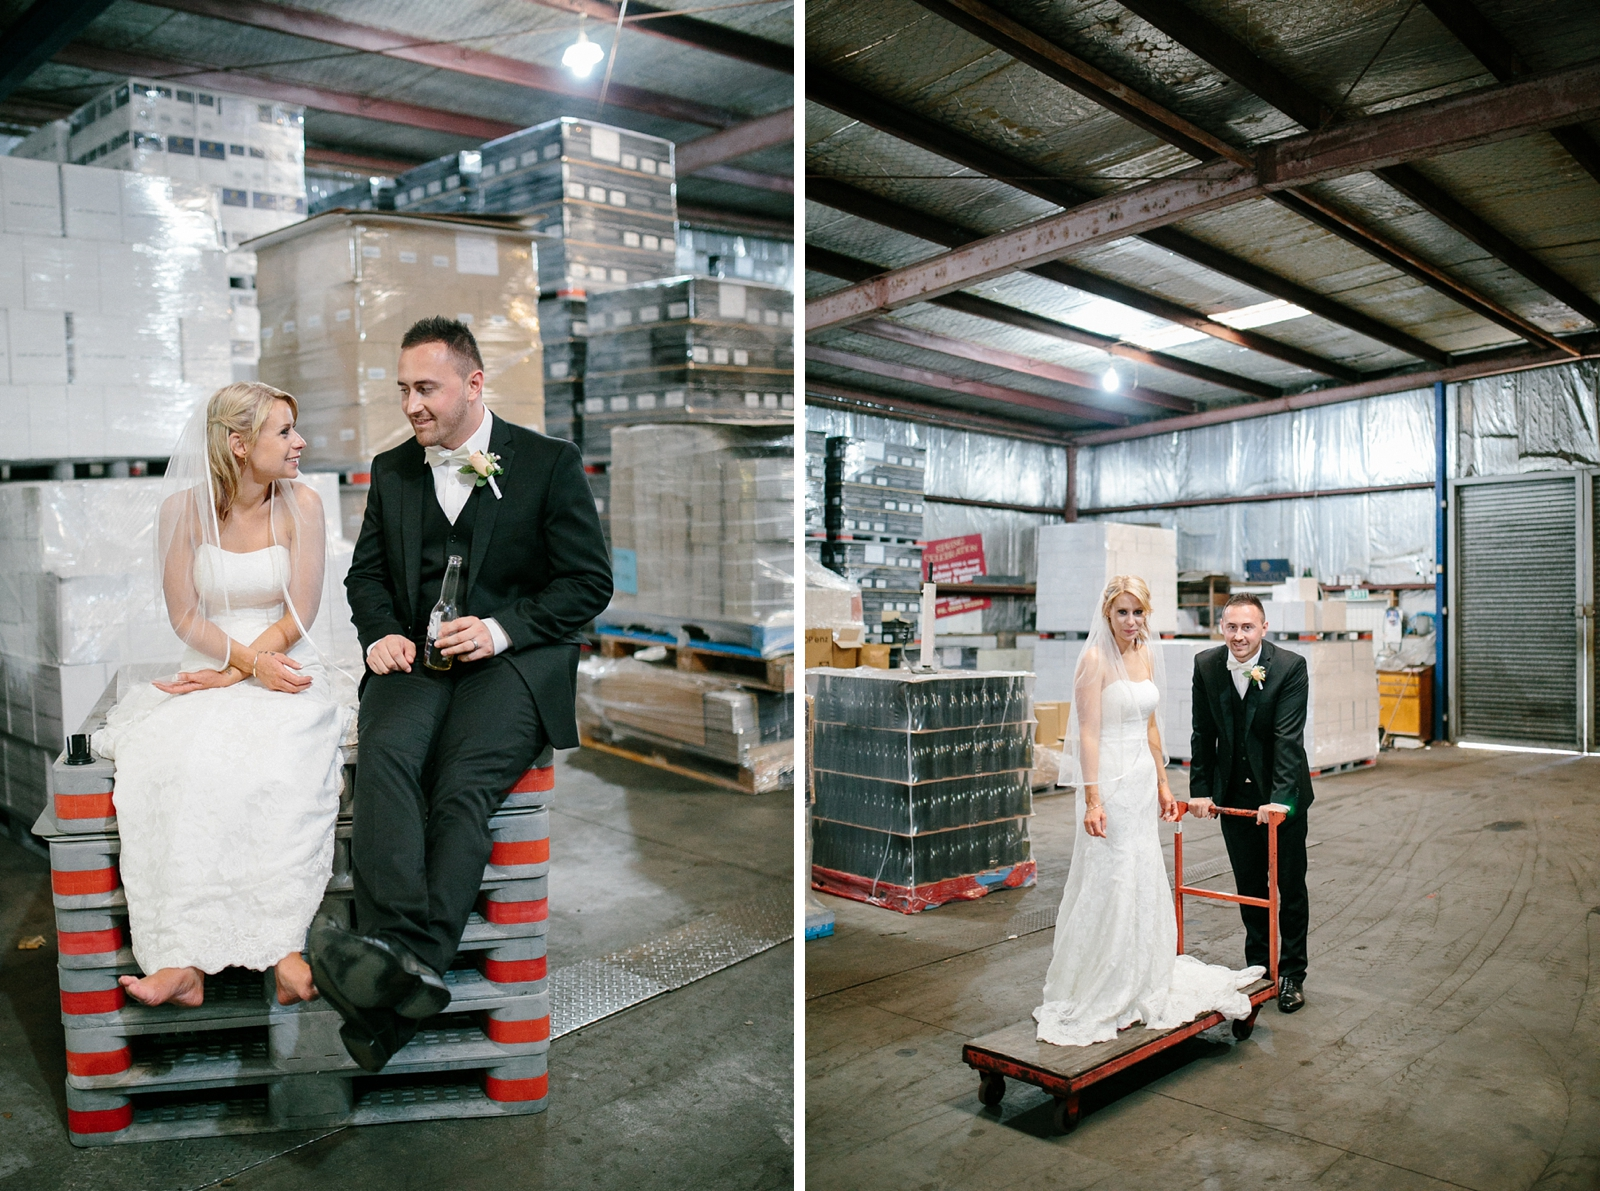 ConnorLaura_Auckland Wedding Photographer_Patty Lagera_0089.jpg